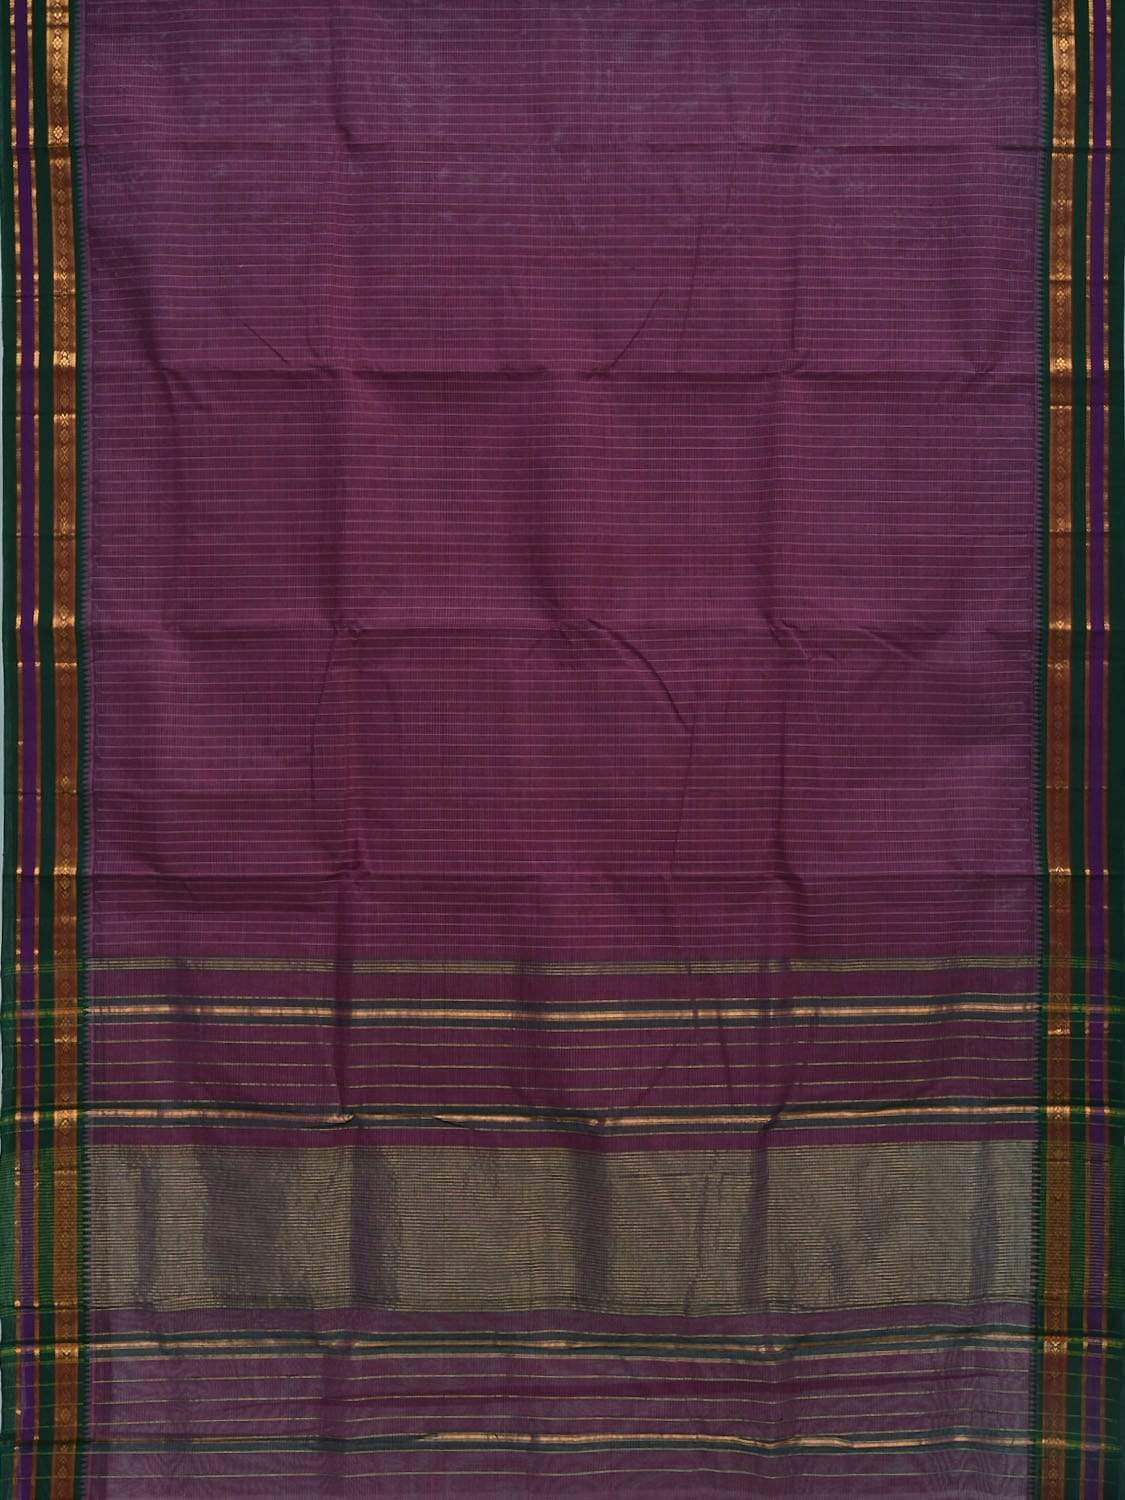 Purple Narayanpet Cotton Handloom Saree with Checks and Border Design No Blouse np0243